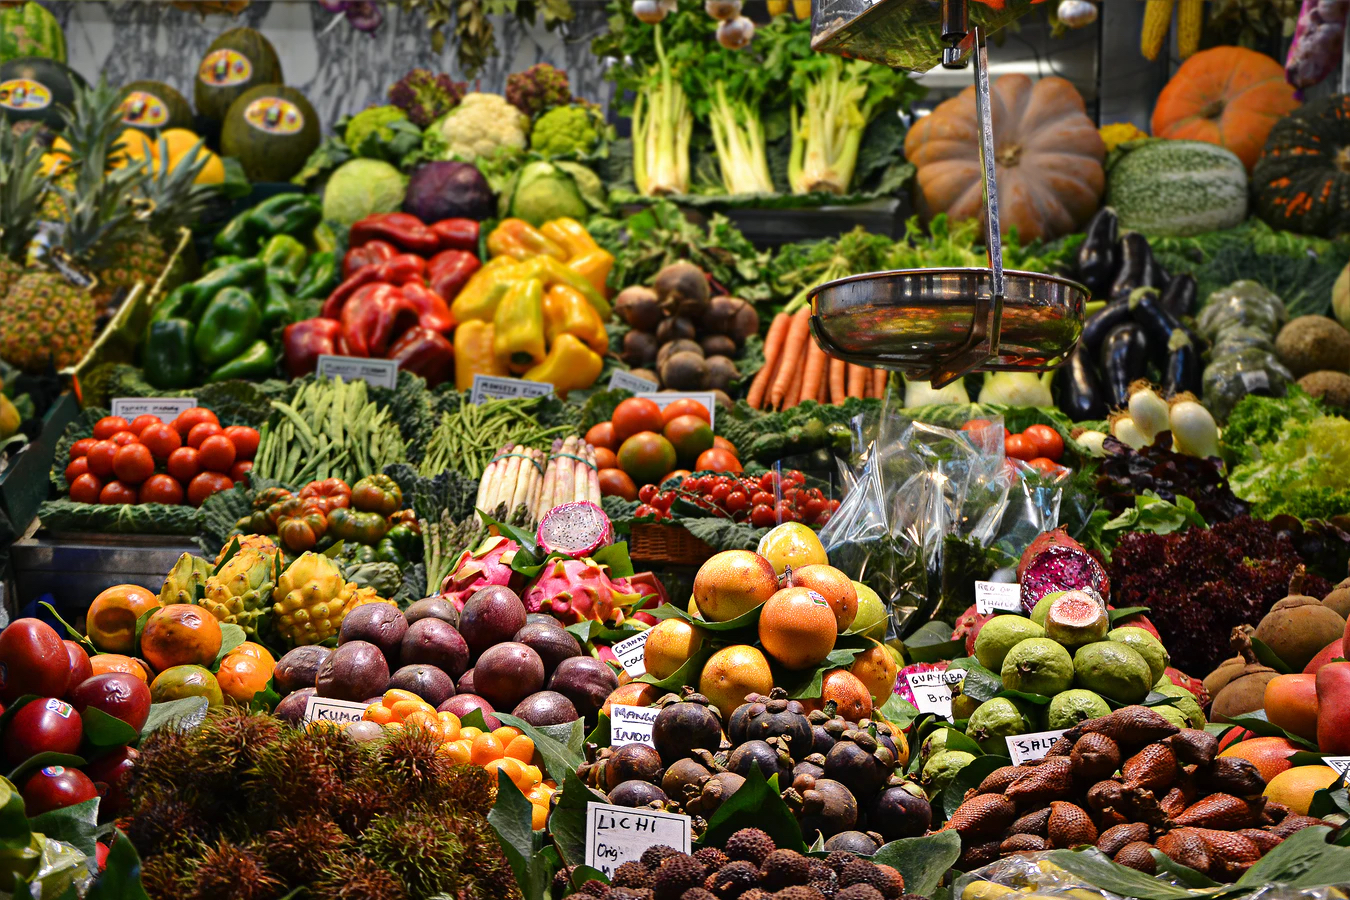 Market stall with fruits & vegetables